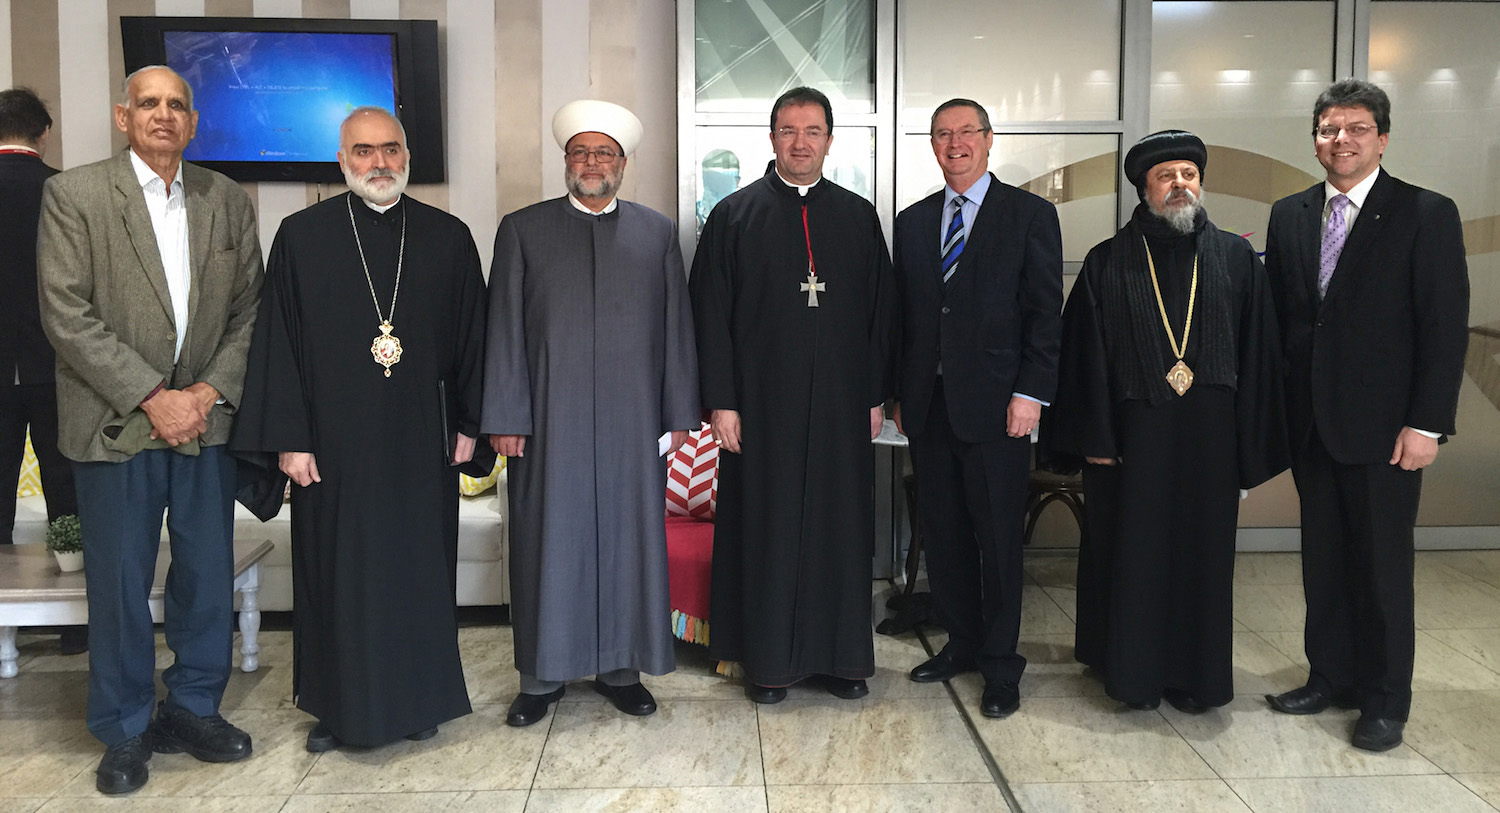 Religious leaders with Tio Faulkner of Marriage Alliance and Greg Smith